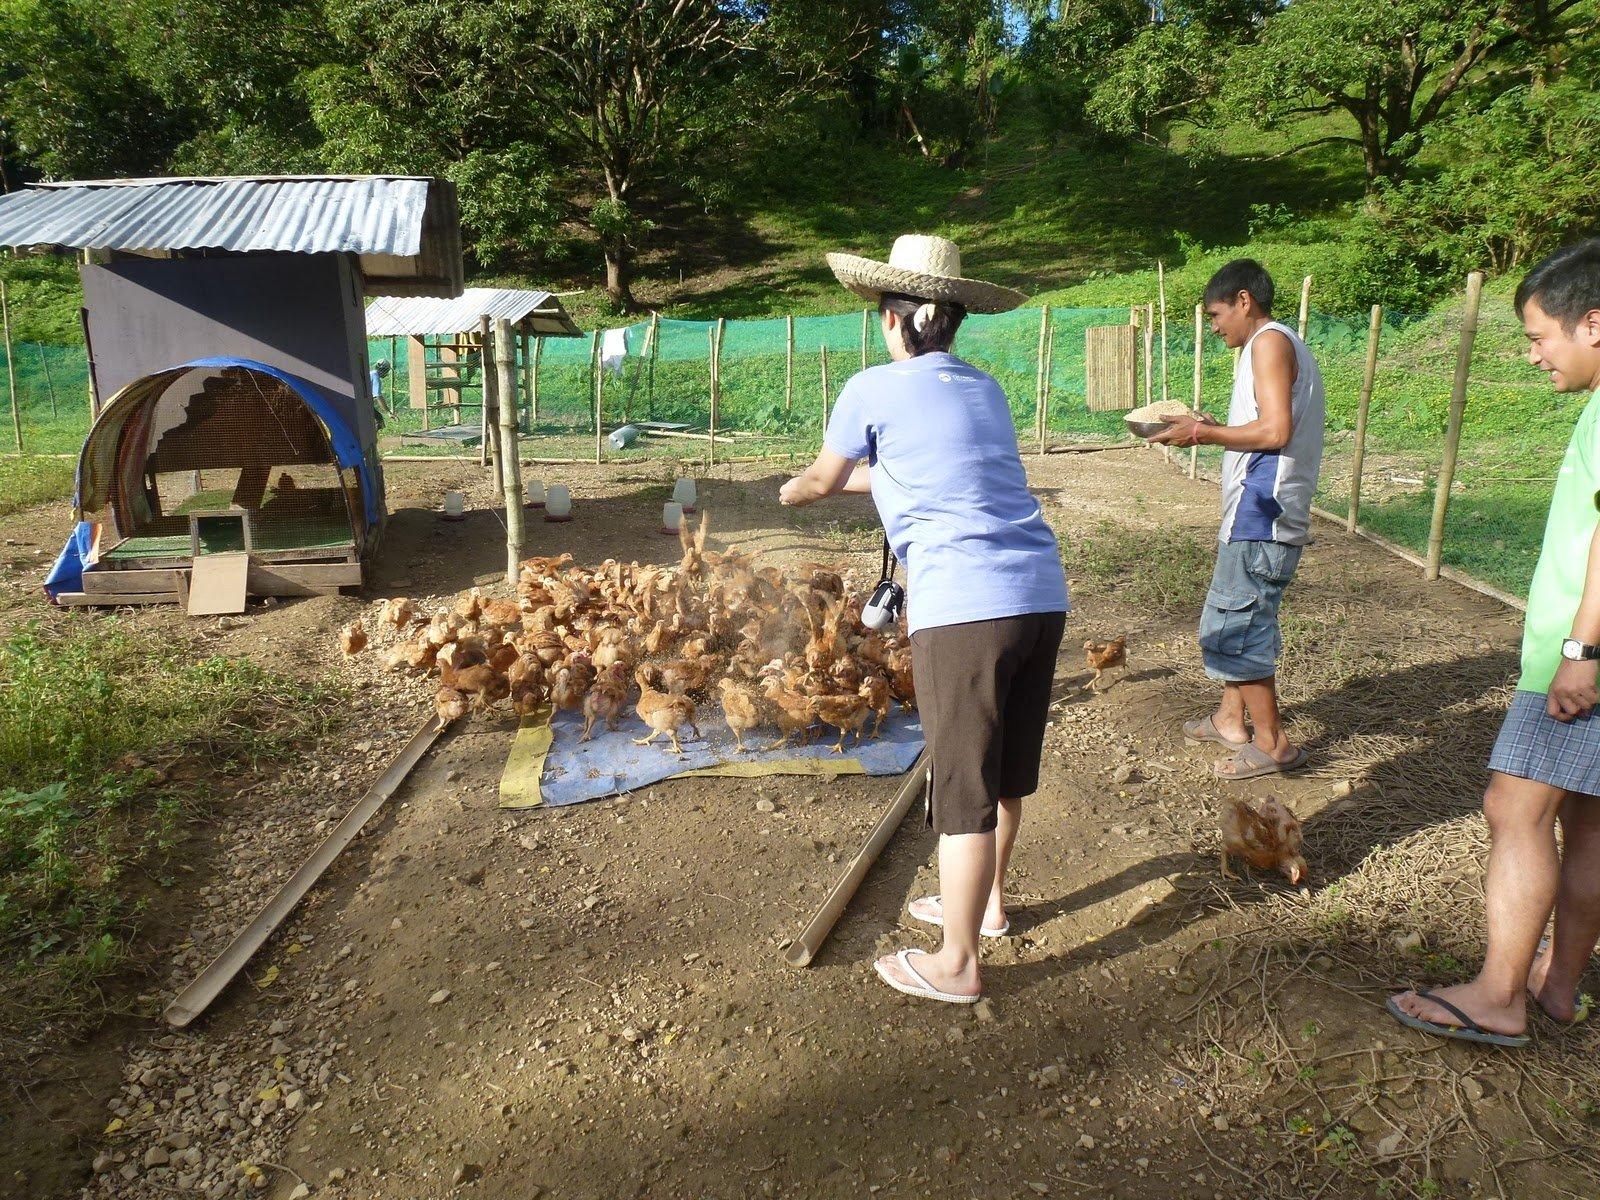 Native poultry farming is a lucrative venture with ofws